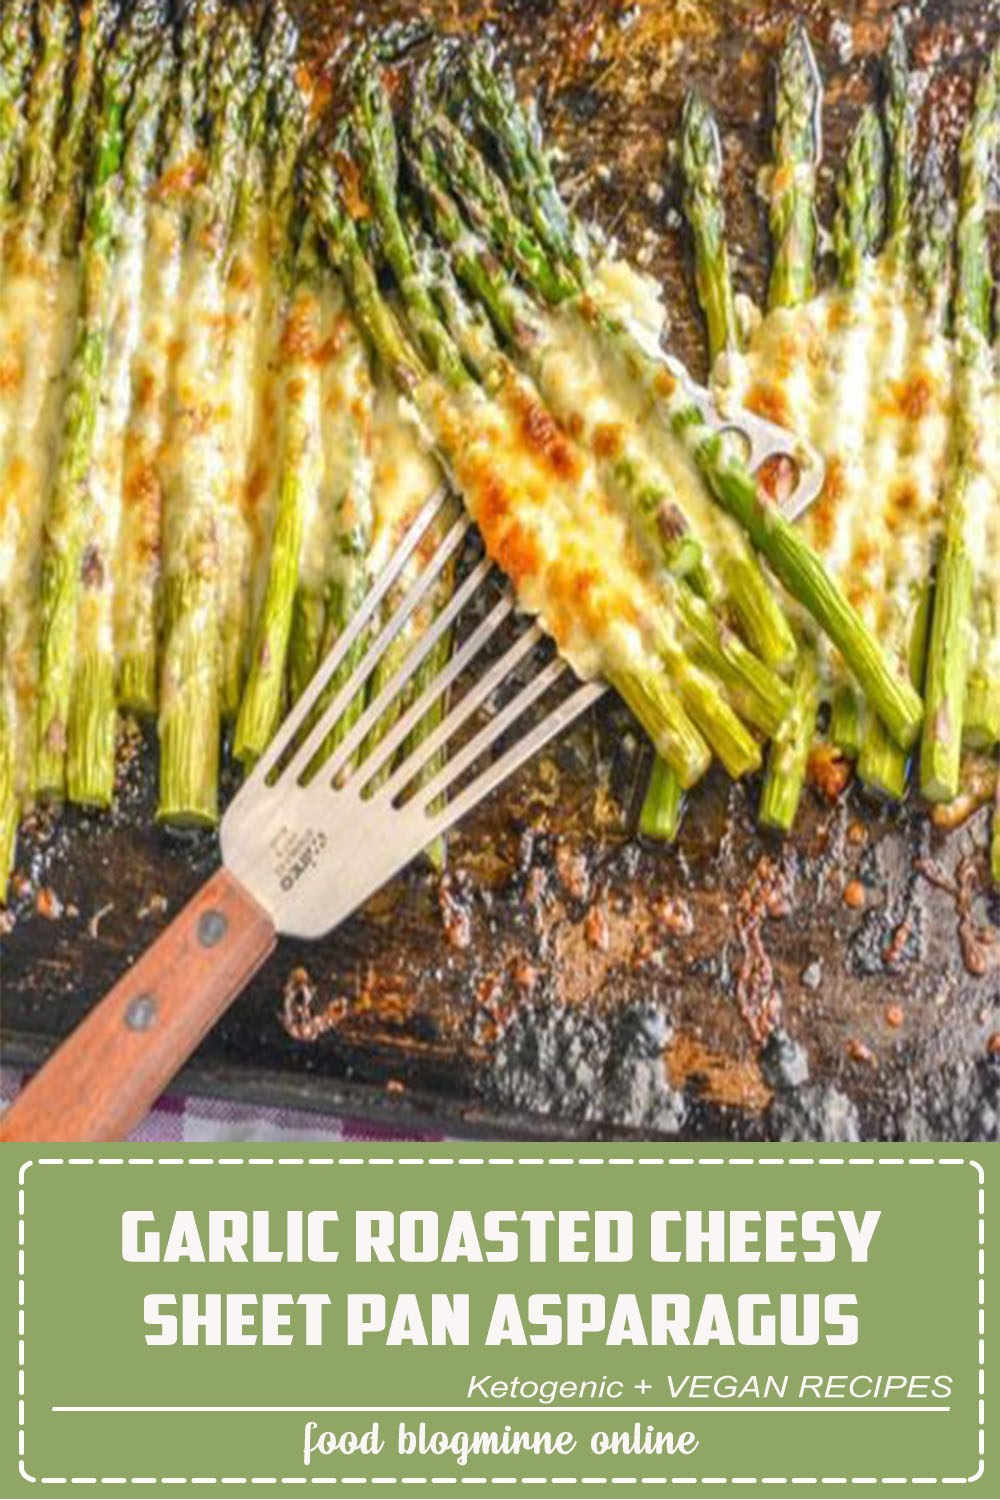 Looking for a new way to fix asparagus? This Garlic Roasted Cheesy Sheet Pan Asparagus is made on a single pan, within 20 minutes, and comes out perfect every single time. It's a sure side dish to turn just about any meaty meal into a hearty dinner.